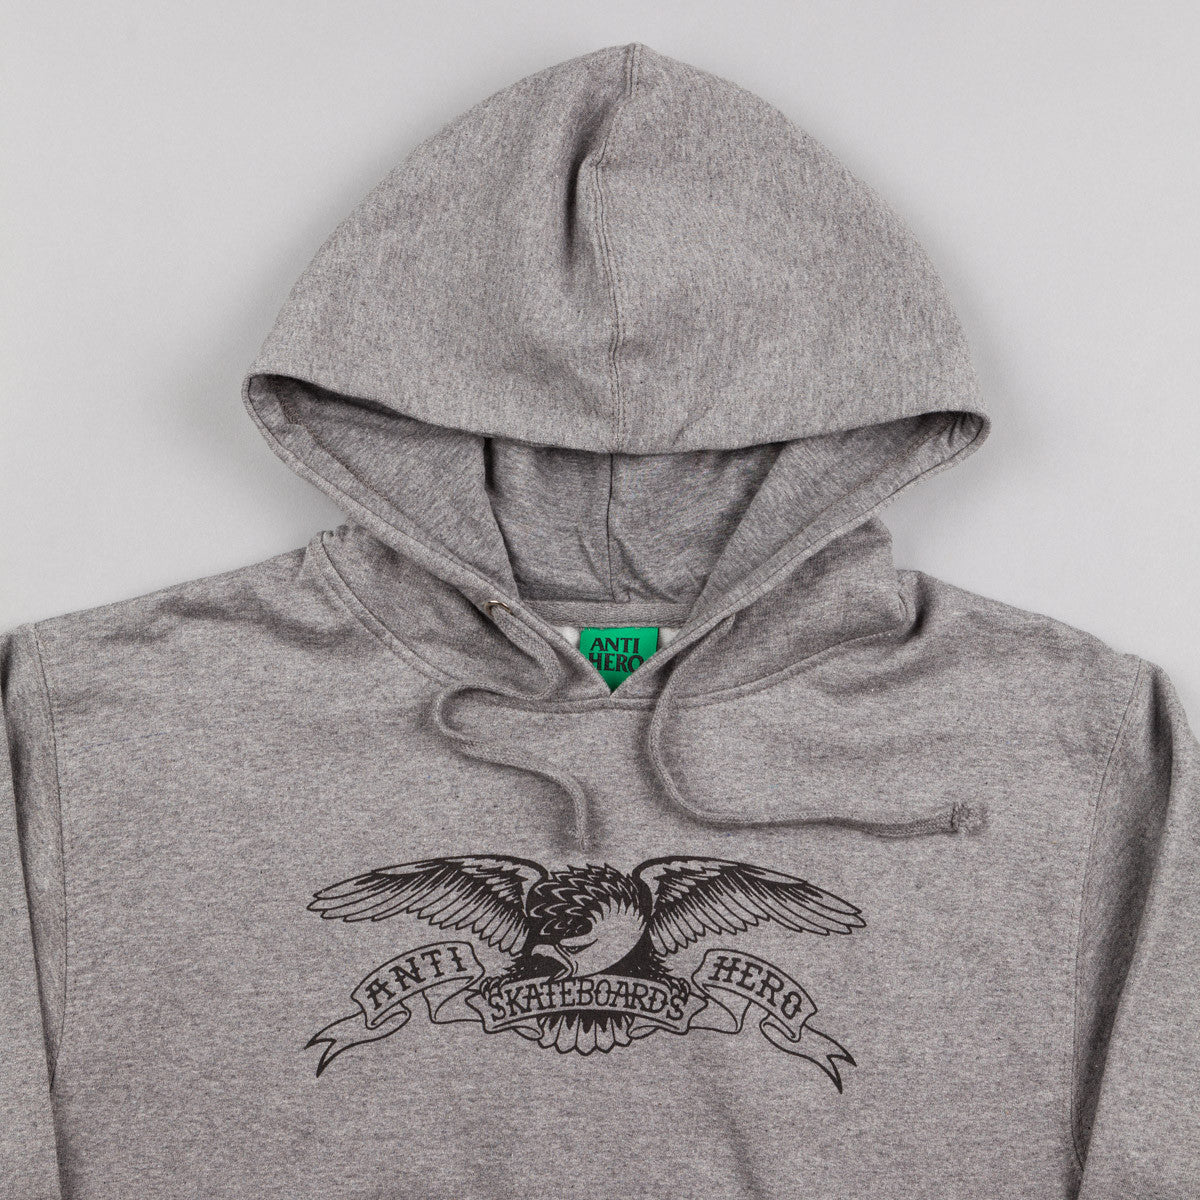 Anti Hero Basic Eagle Hooded Sweatshirt - Gunmetal Heather